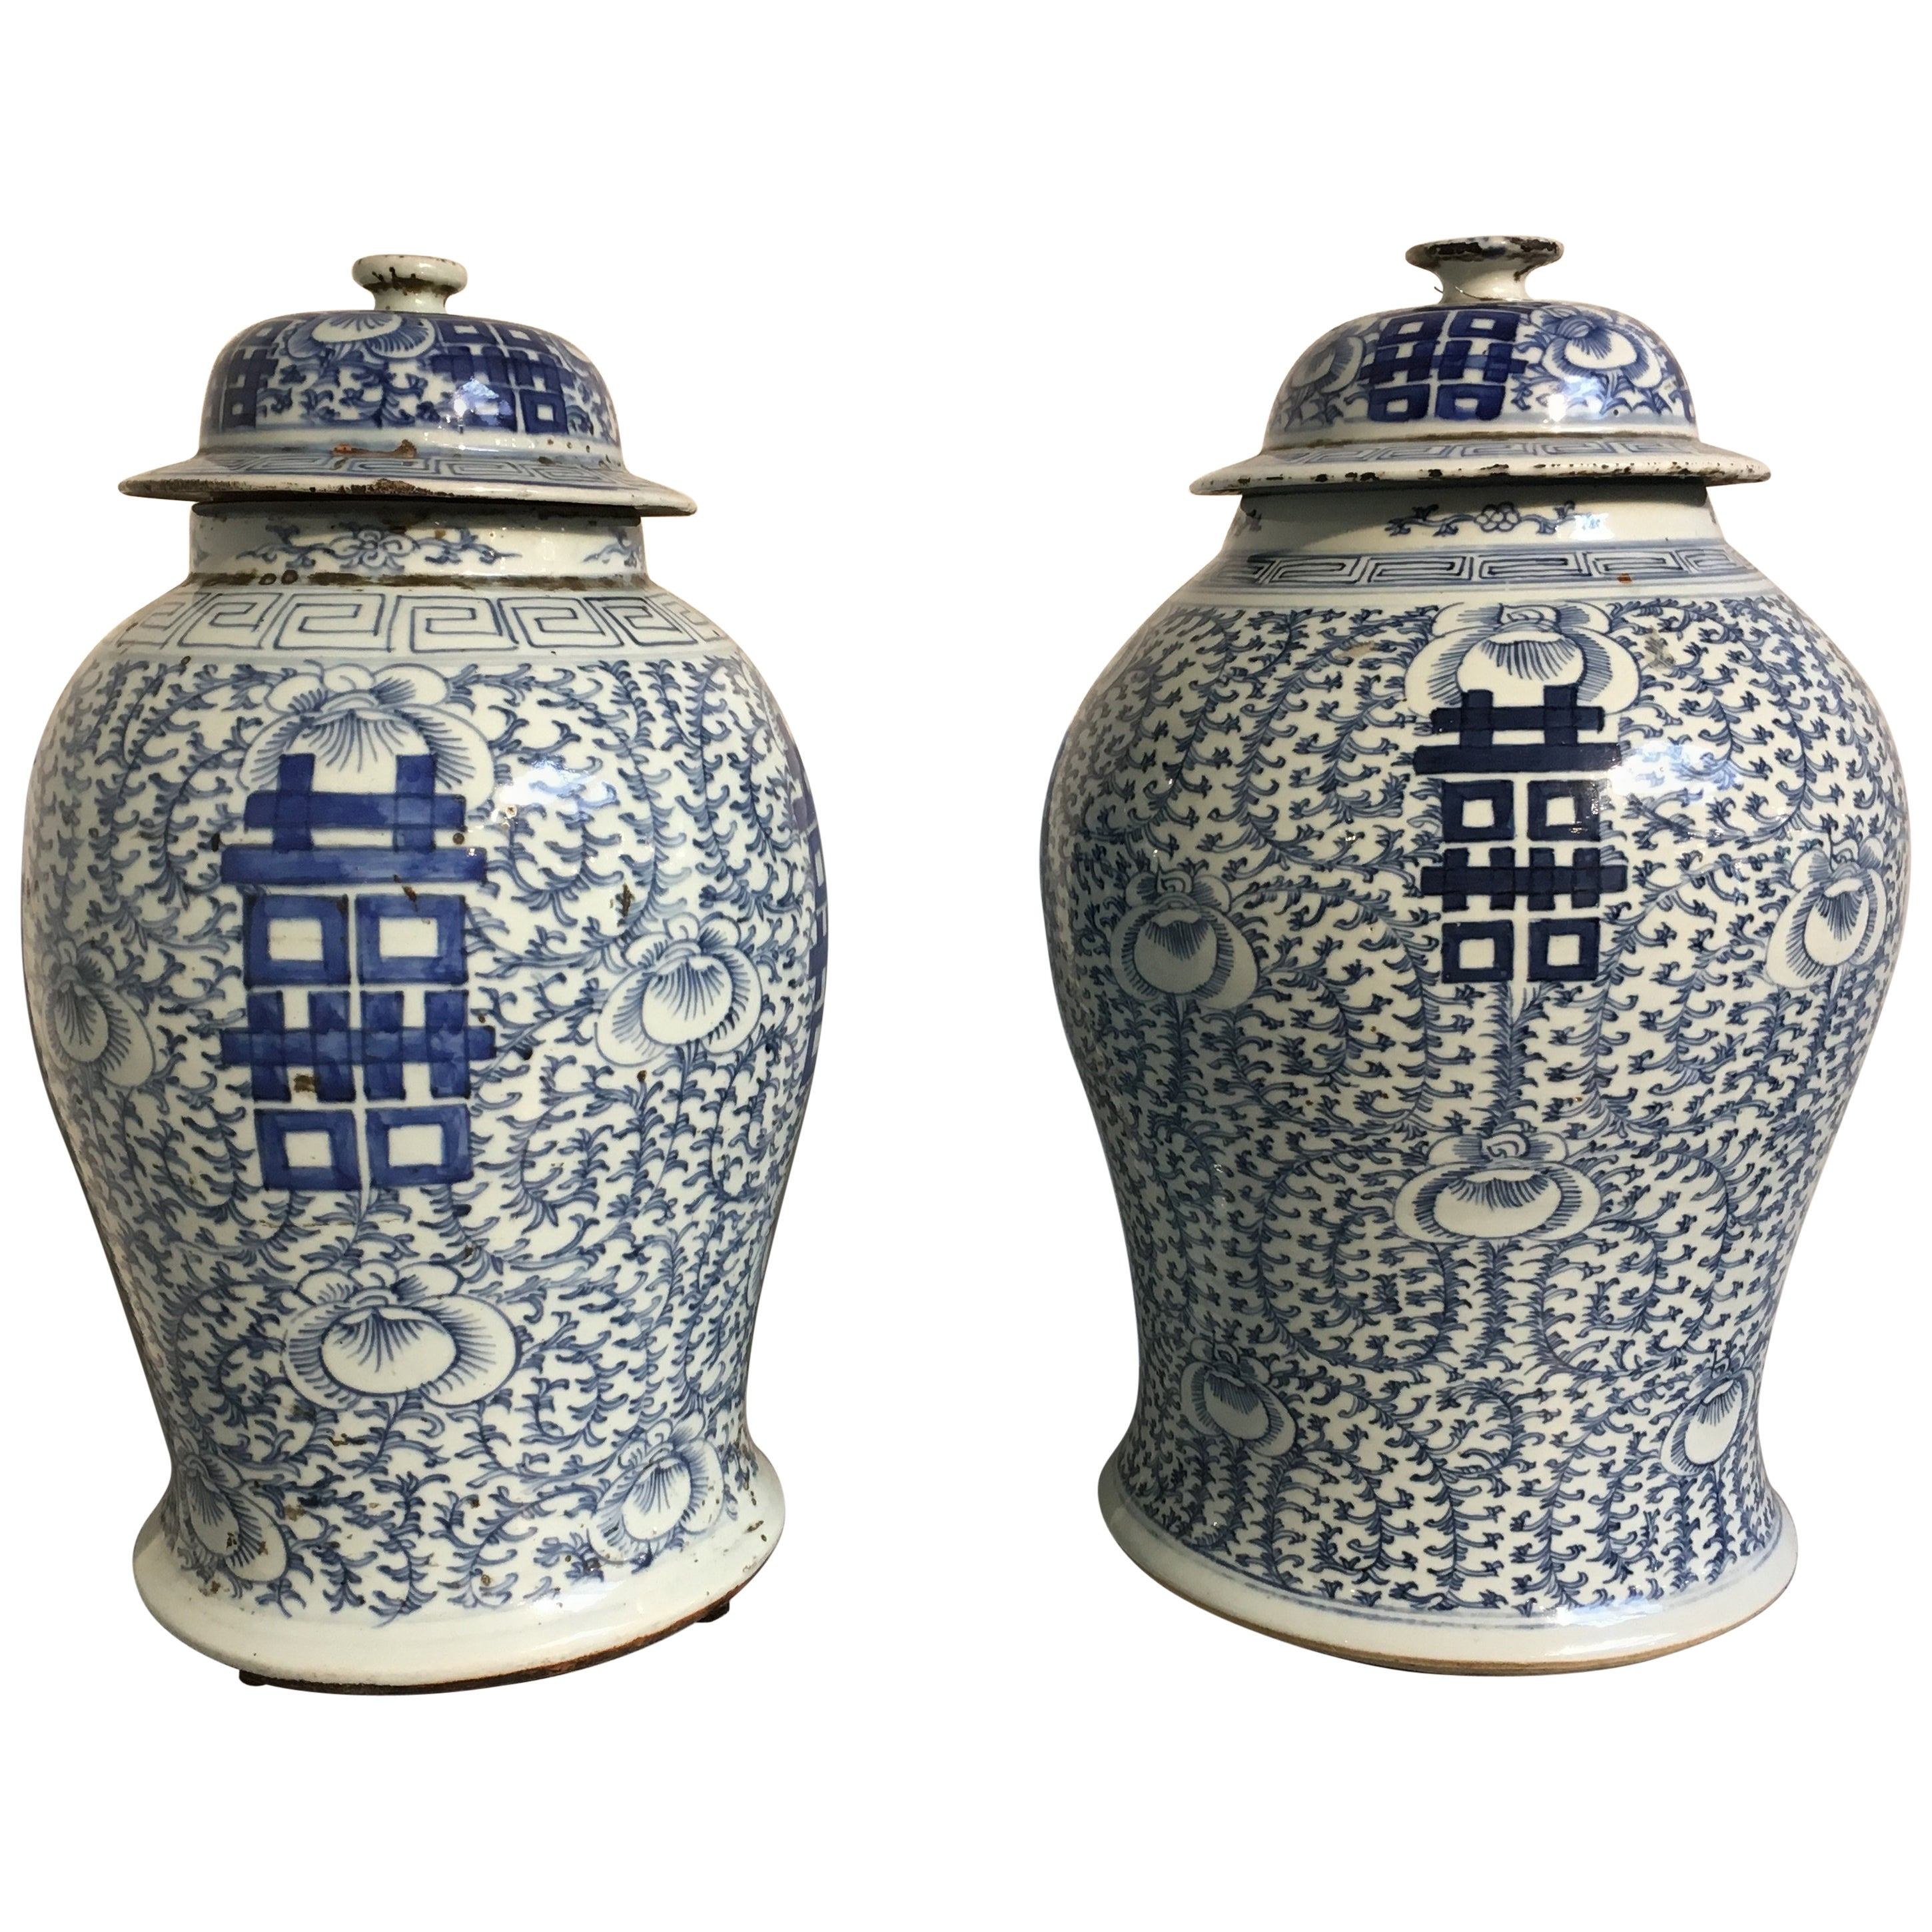 Near Pair of Antique Chinese Blue and White Double Happiness Covered Jars